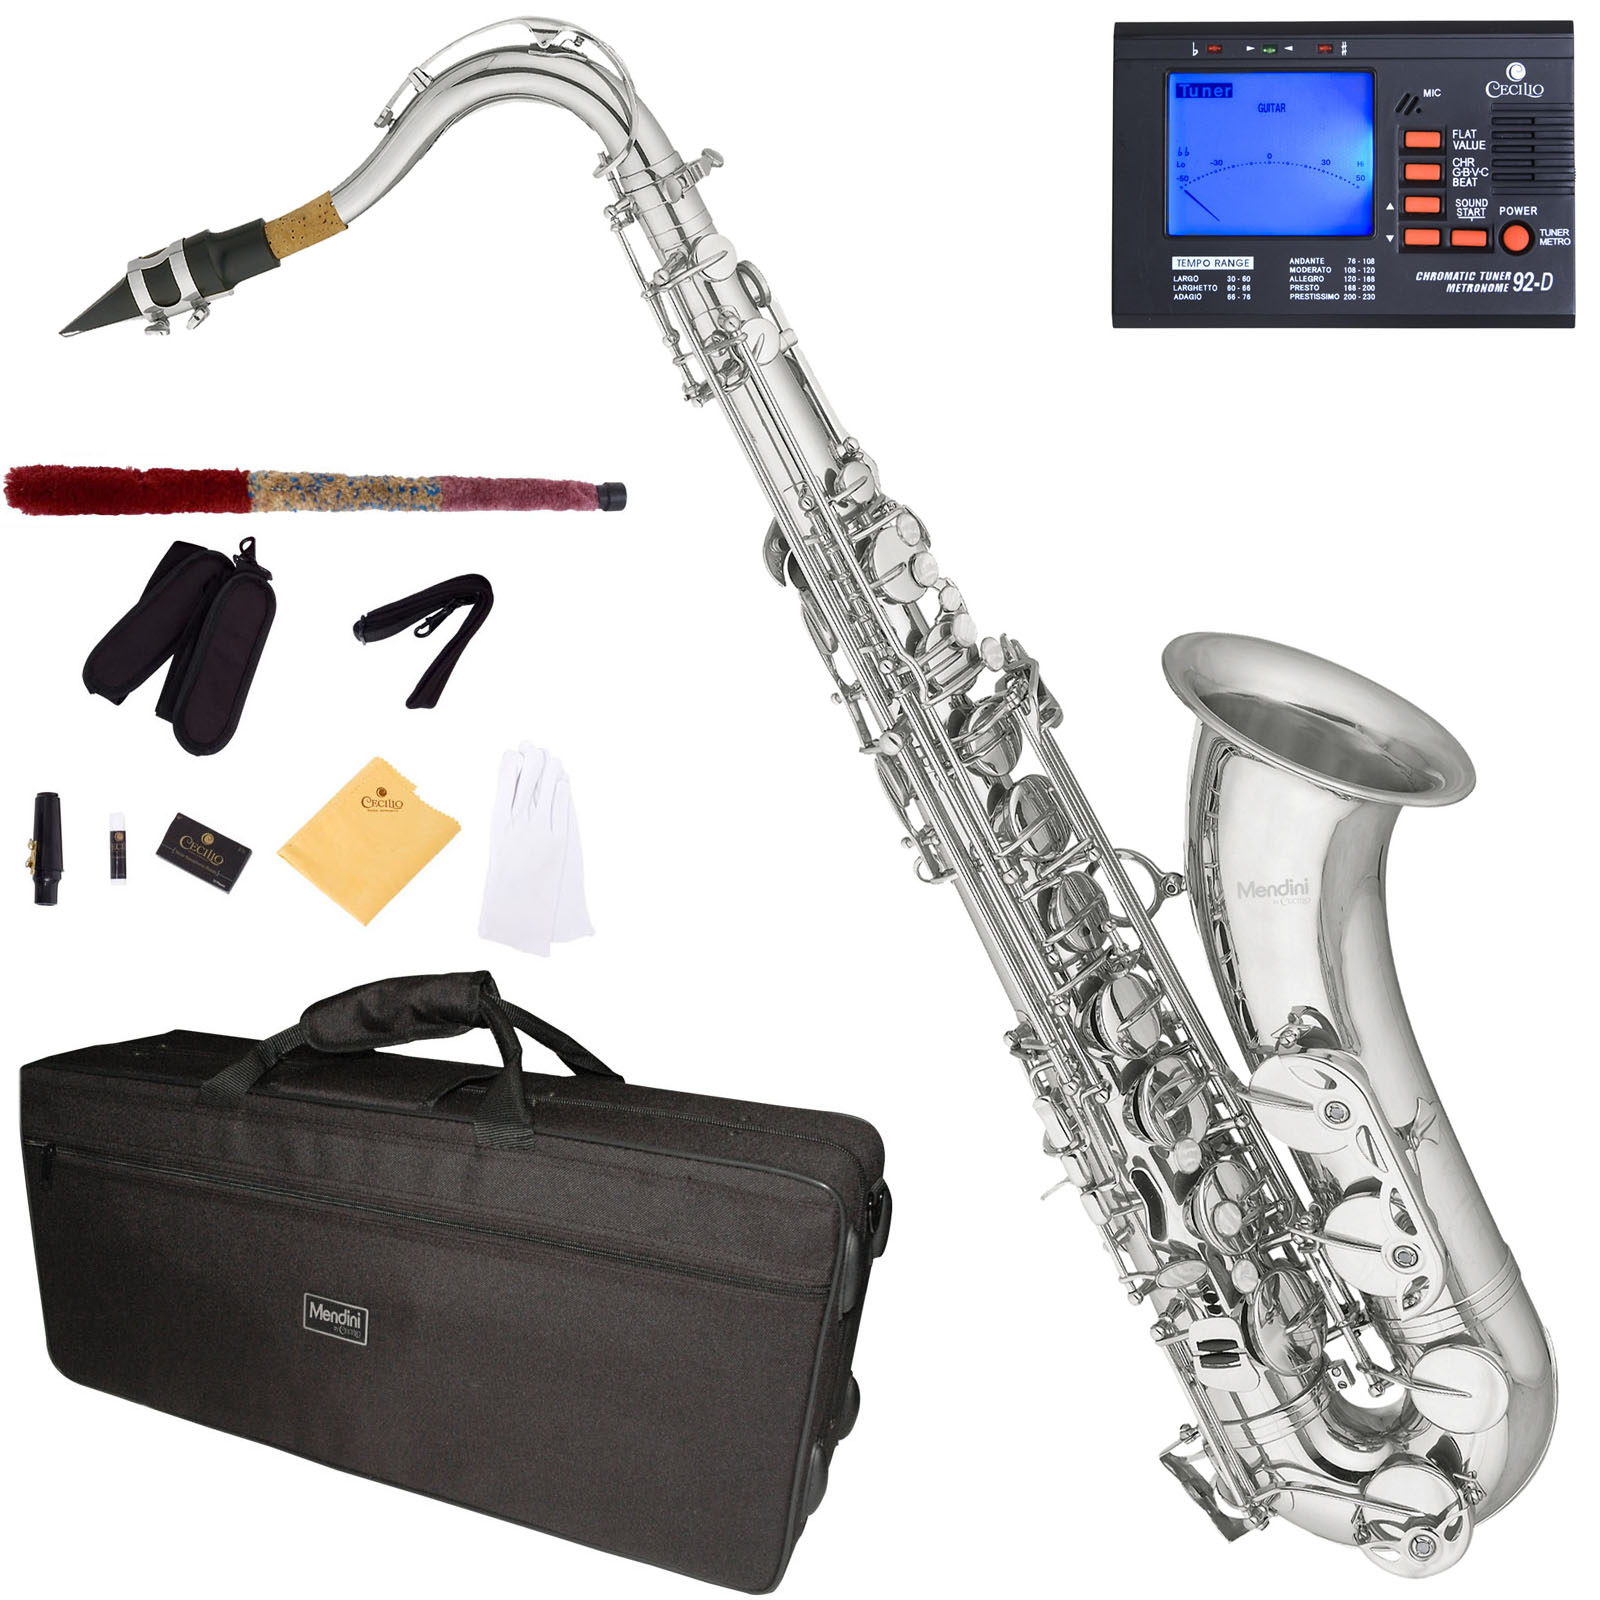 Mendini by Cecilio Bb Tenor Saxophone with Tuner, 10 Reeds, Mouthpiece and Case, MTS-N Nickel Plated